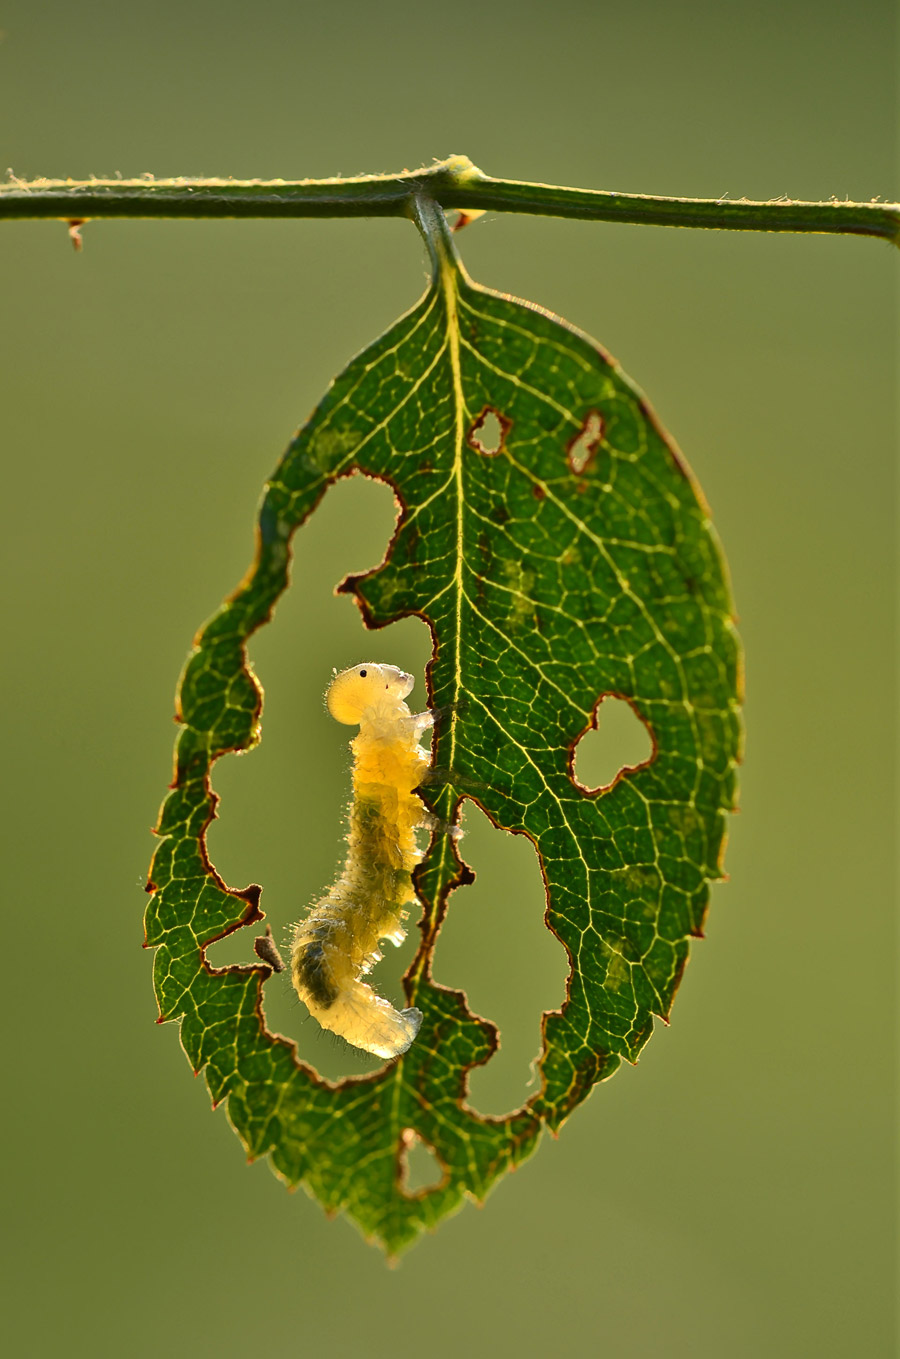 Caterpillar's idea, © Minghui Yuan, Wuhan, China, Highly Honored Small World, Nature's Best Photography Asia